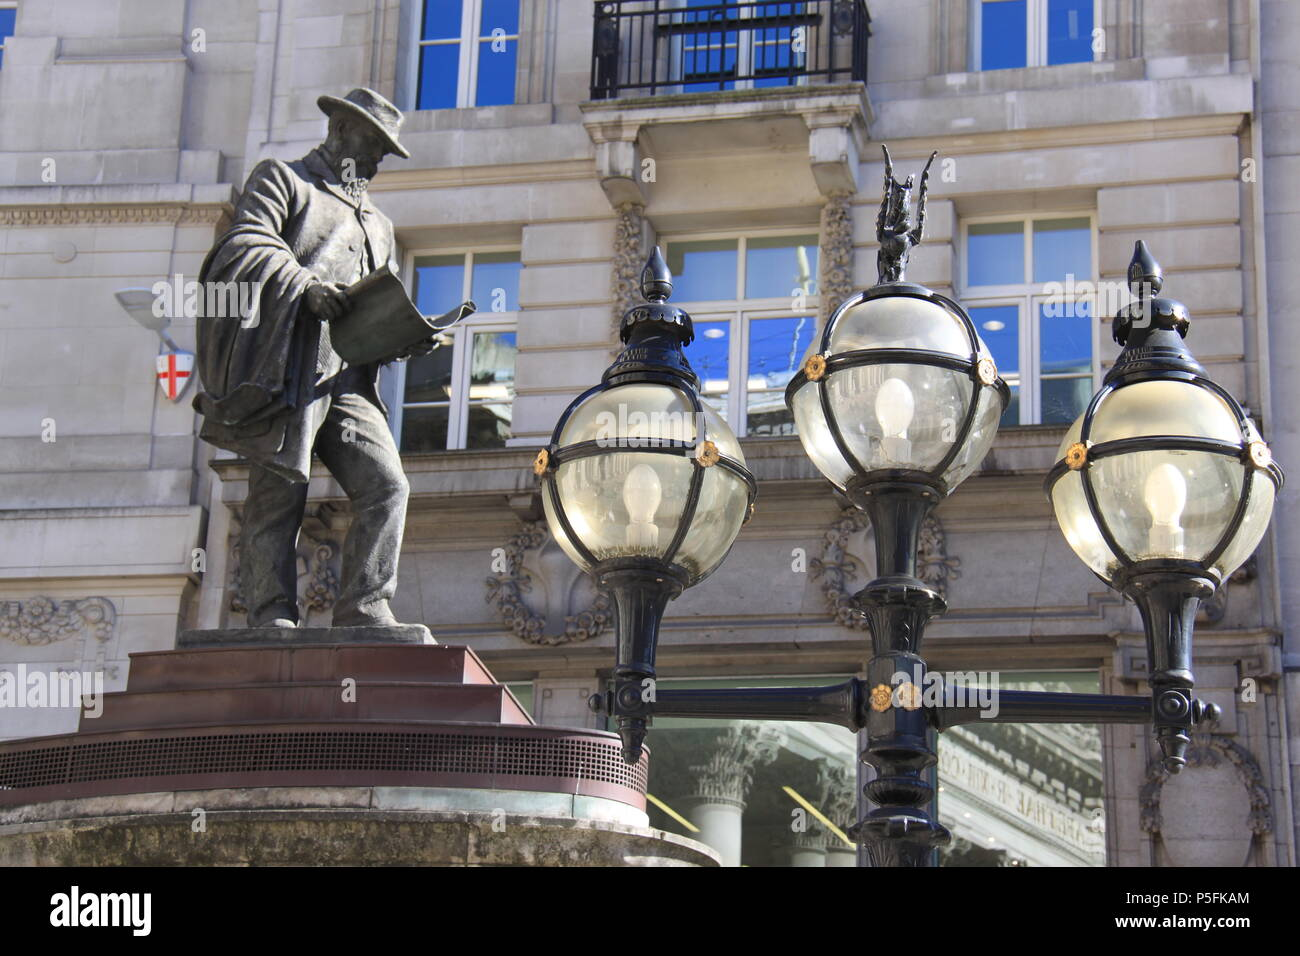 Bronze statue of James Henry Greathead (South African civil and railways engineer) outside The Royal Exchange, London, England, UK, PETER GRANT - Stock Image